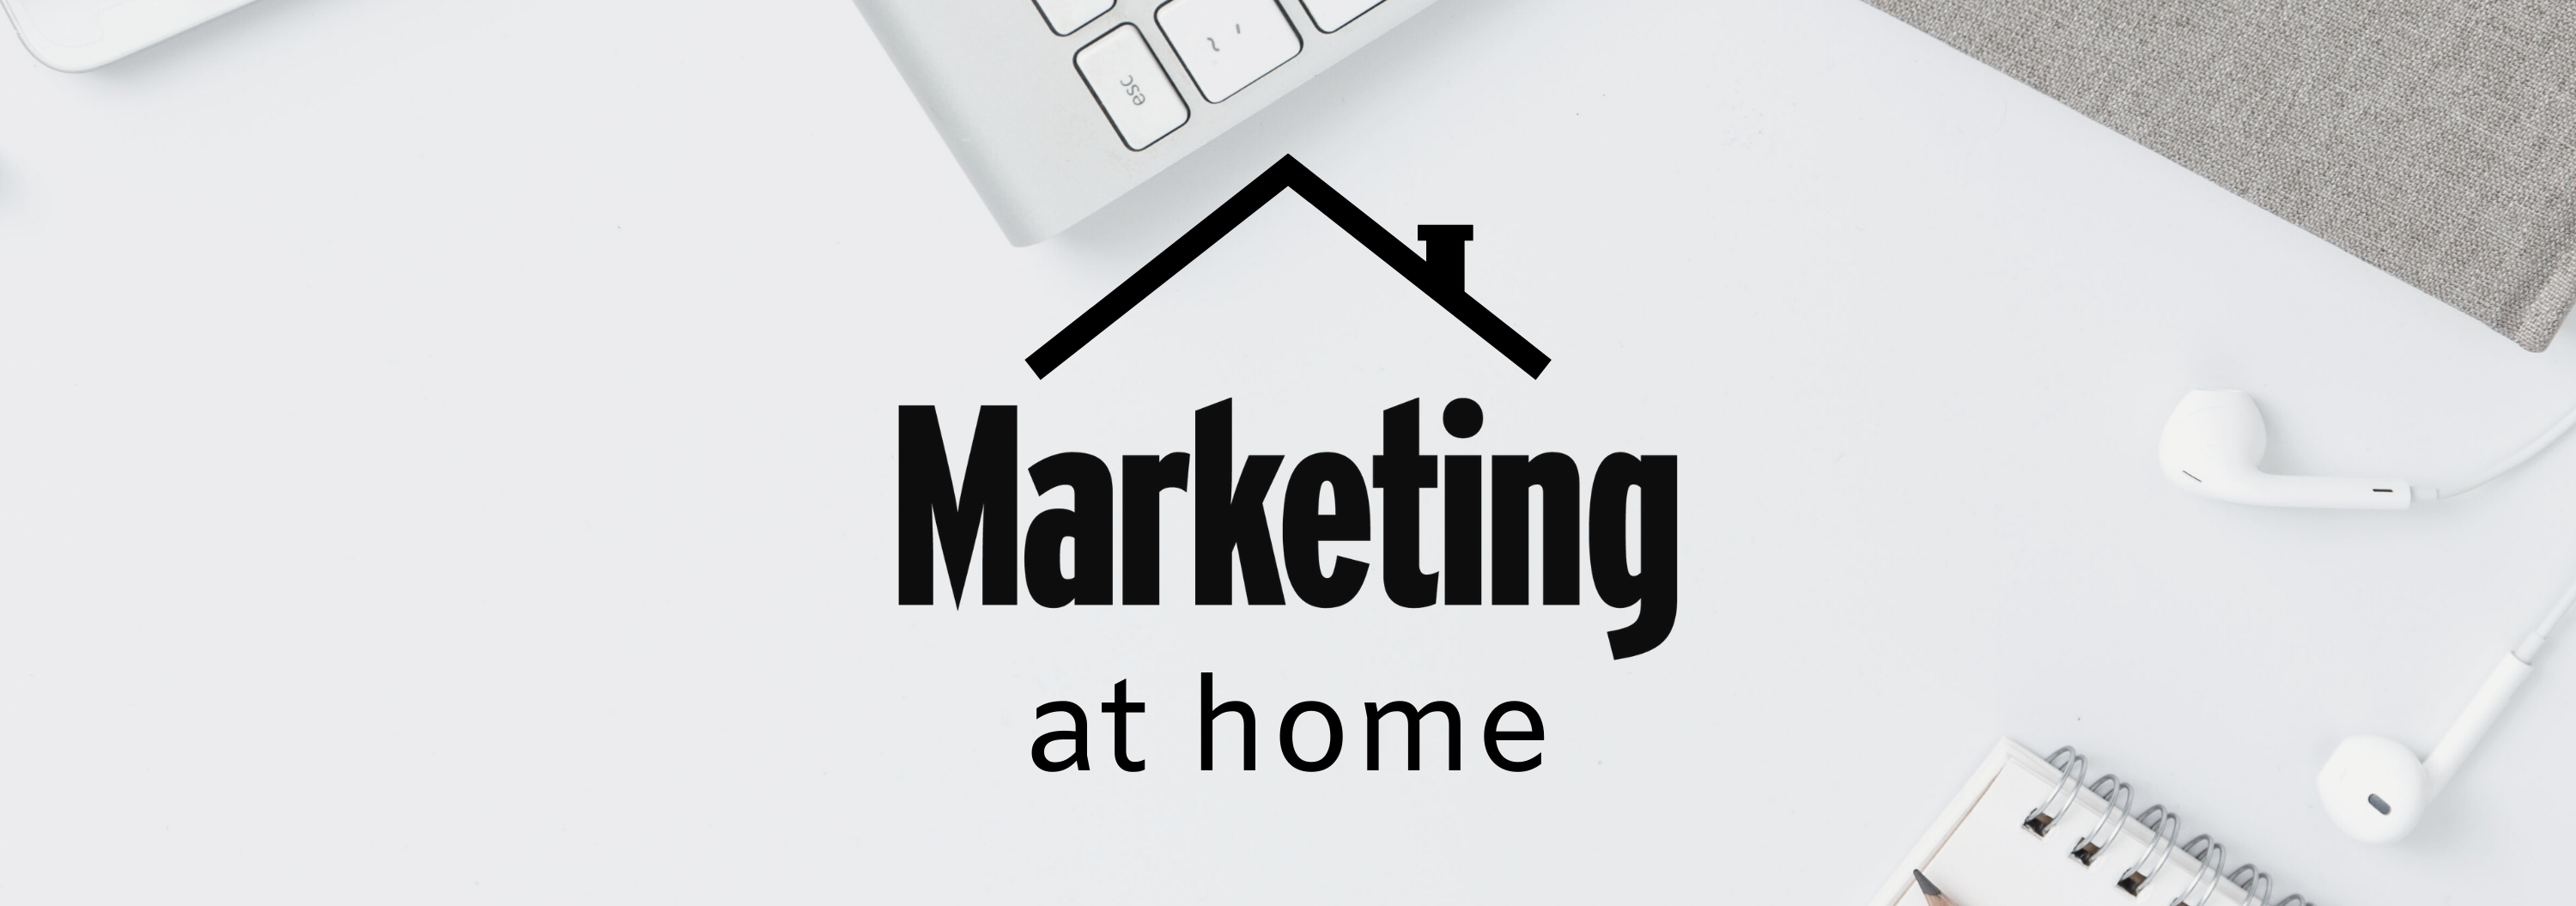 Marketing at home: new video series